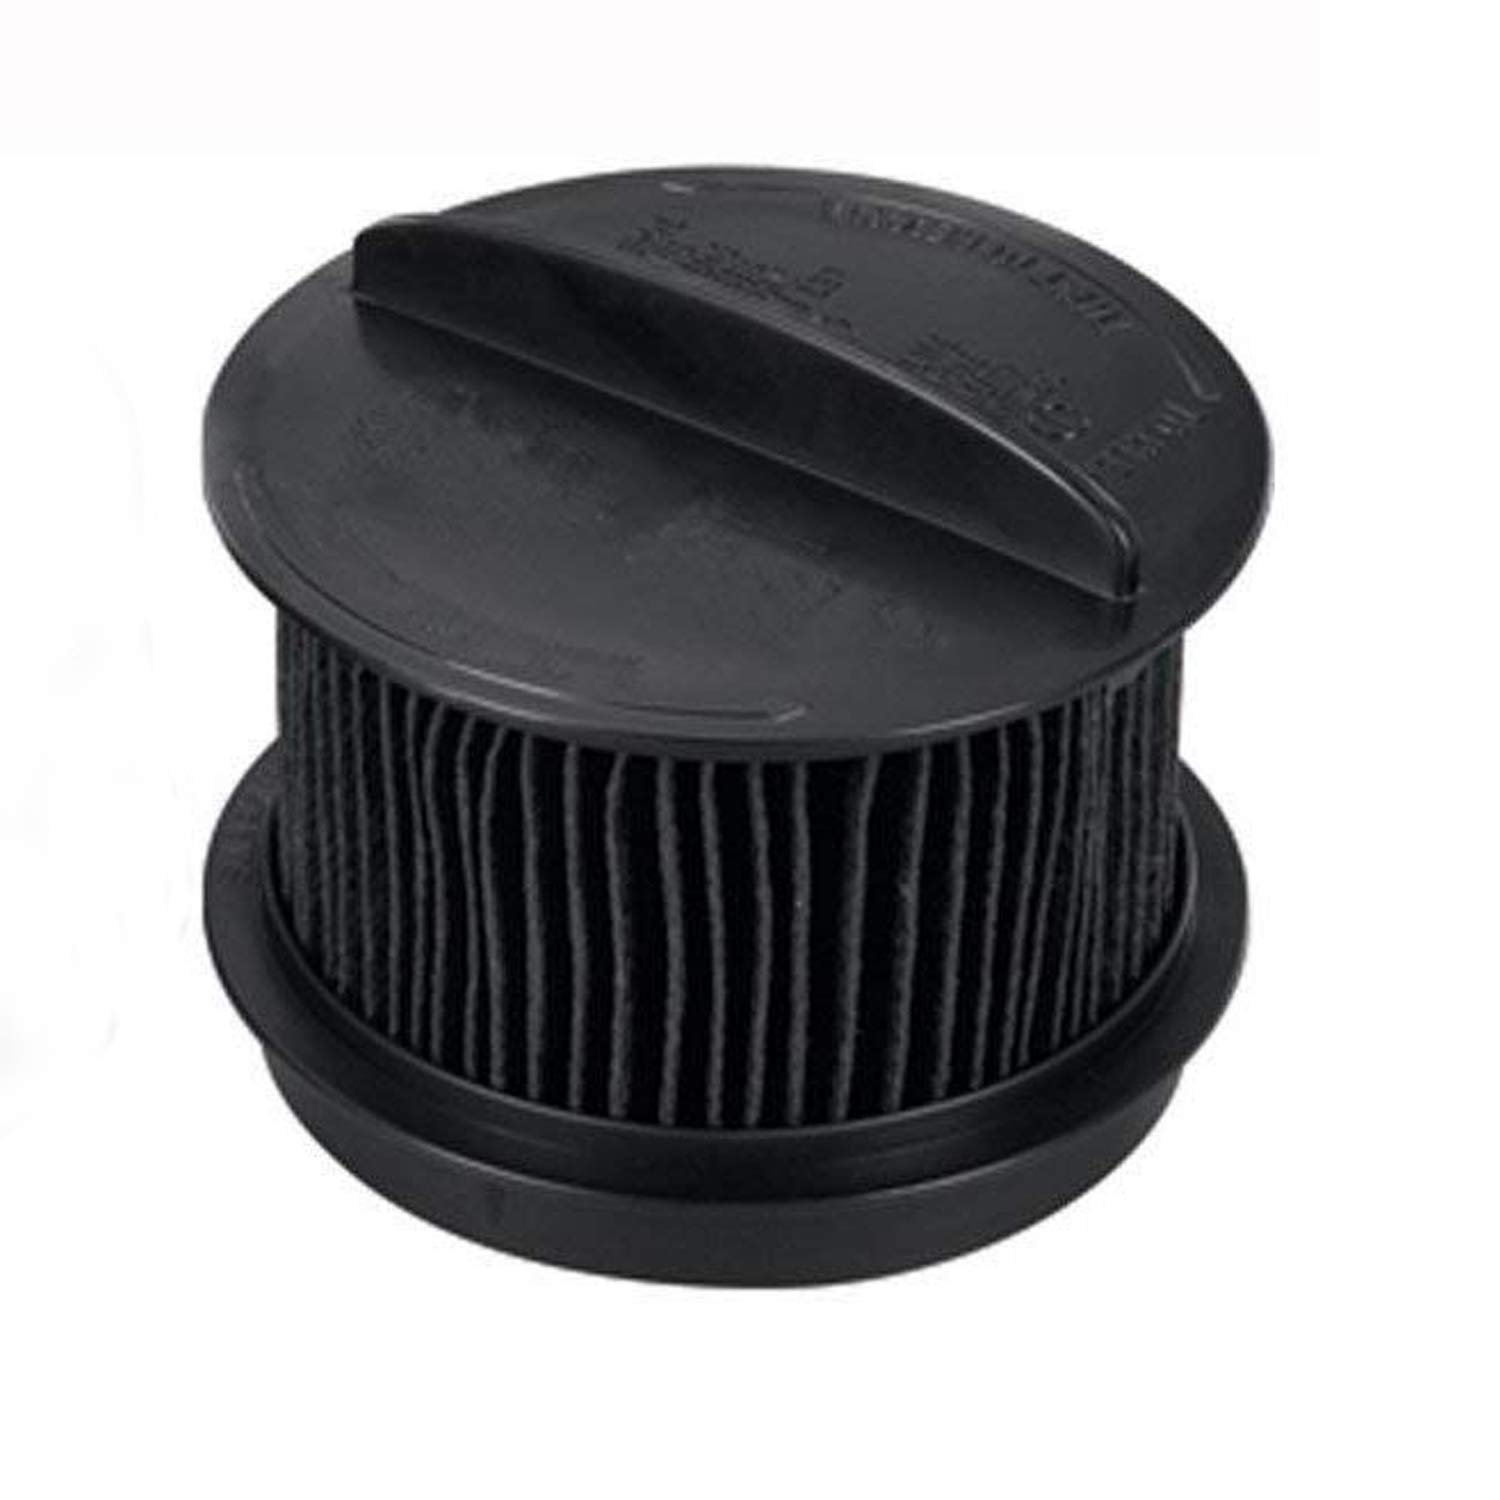 Bissell Cleanview Helix Bag-less Upright Cartridge Pleated Filter Part # 2031464